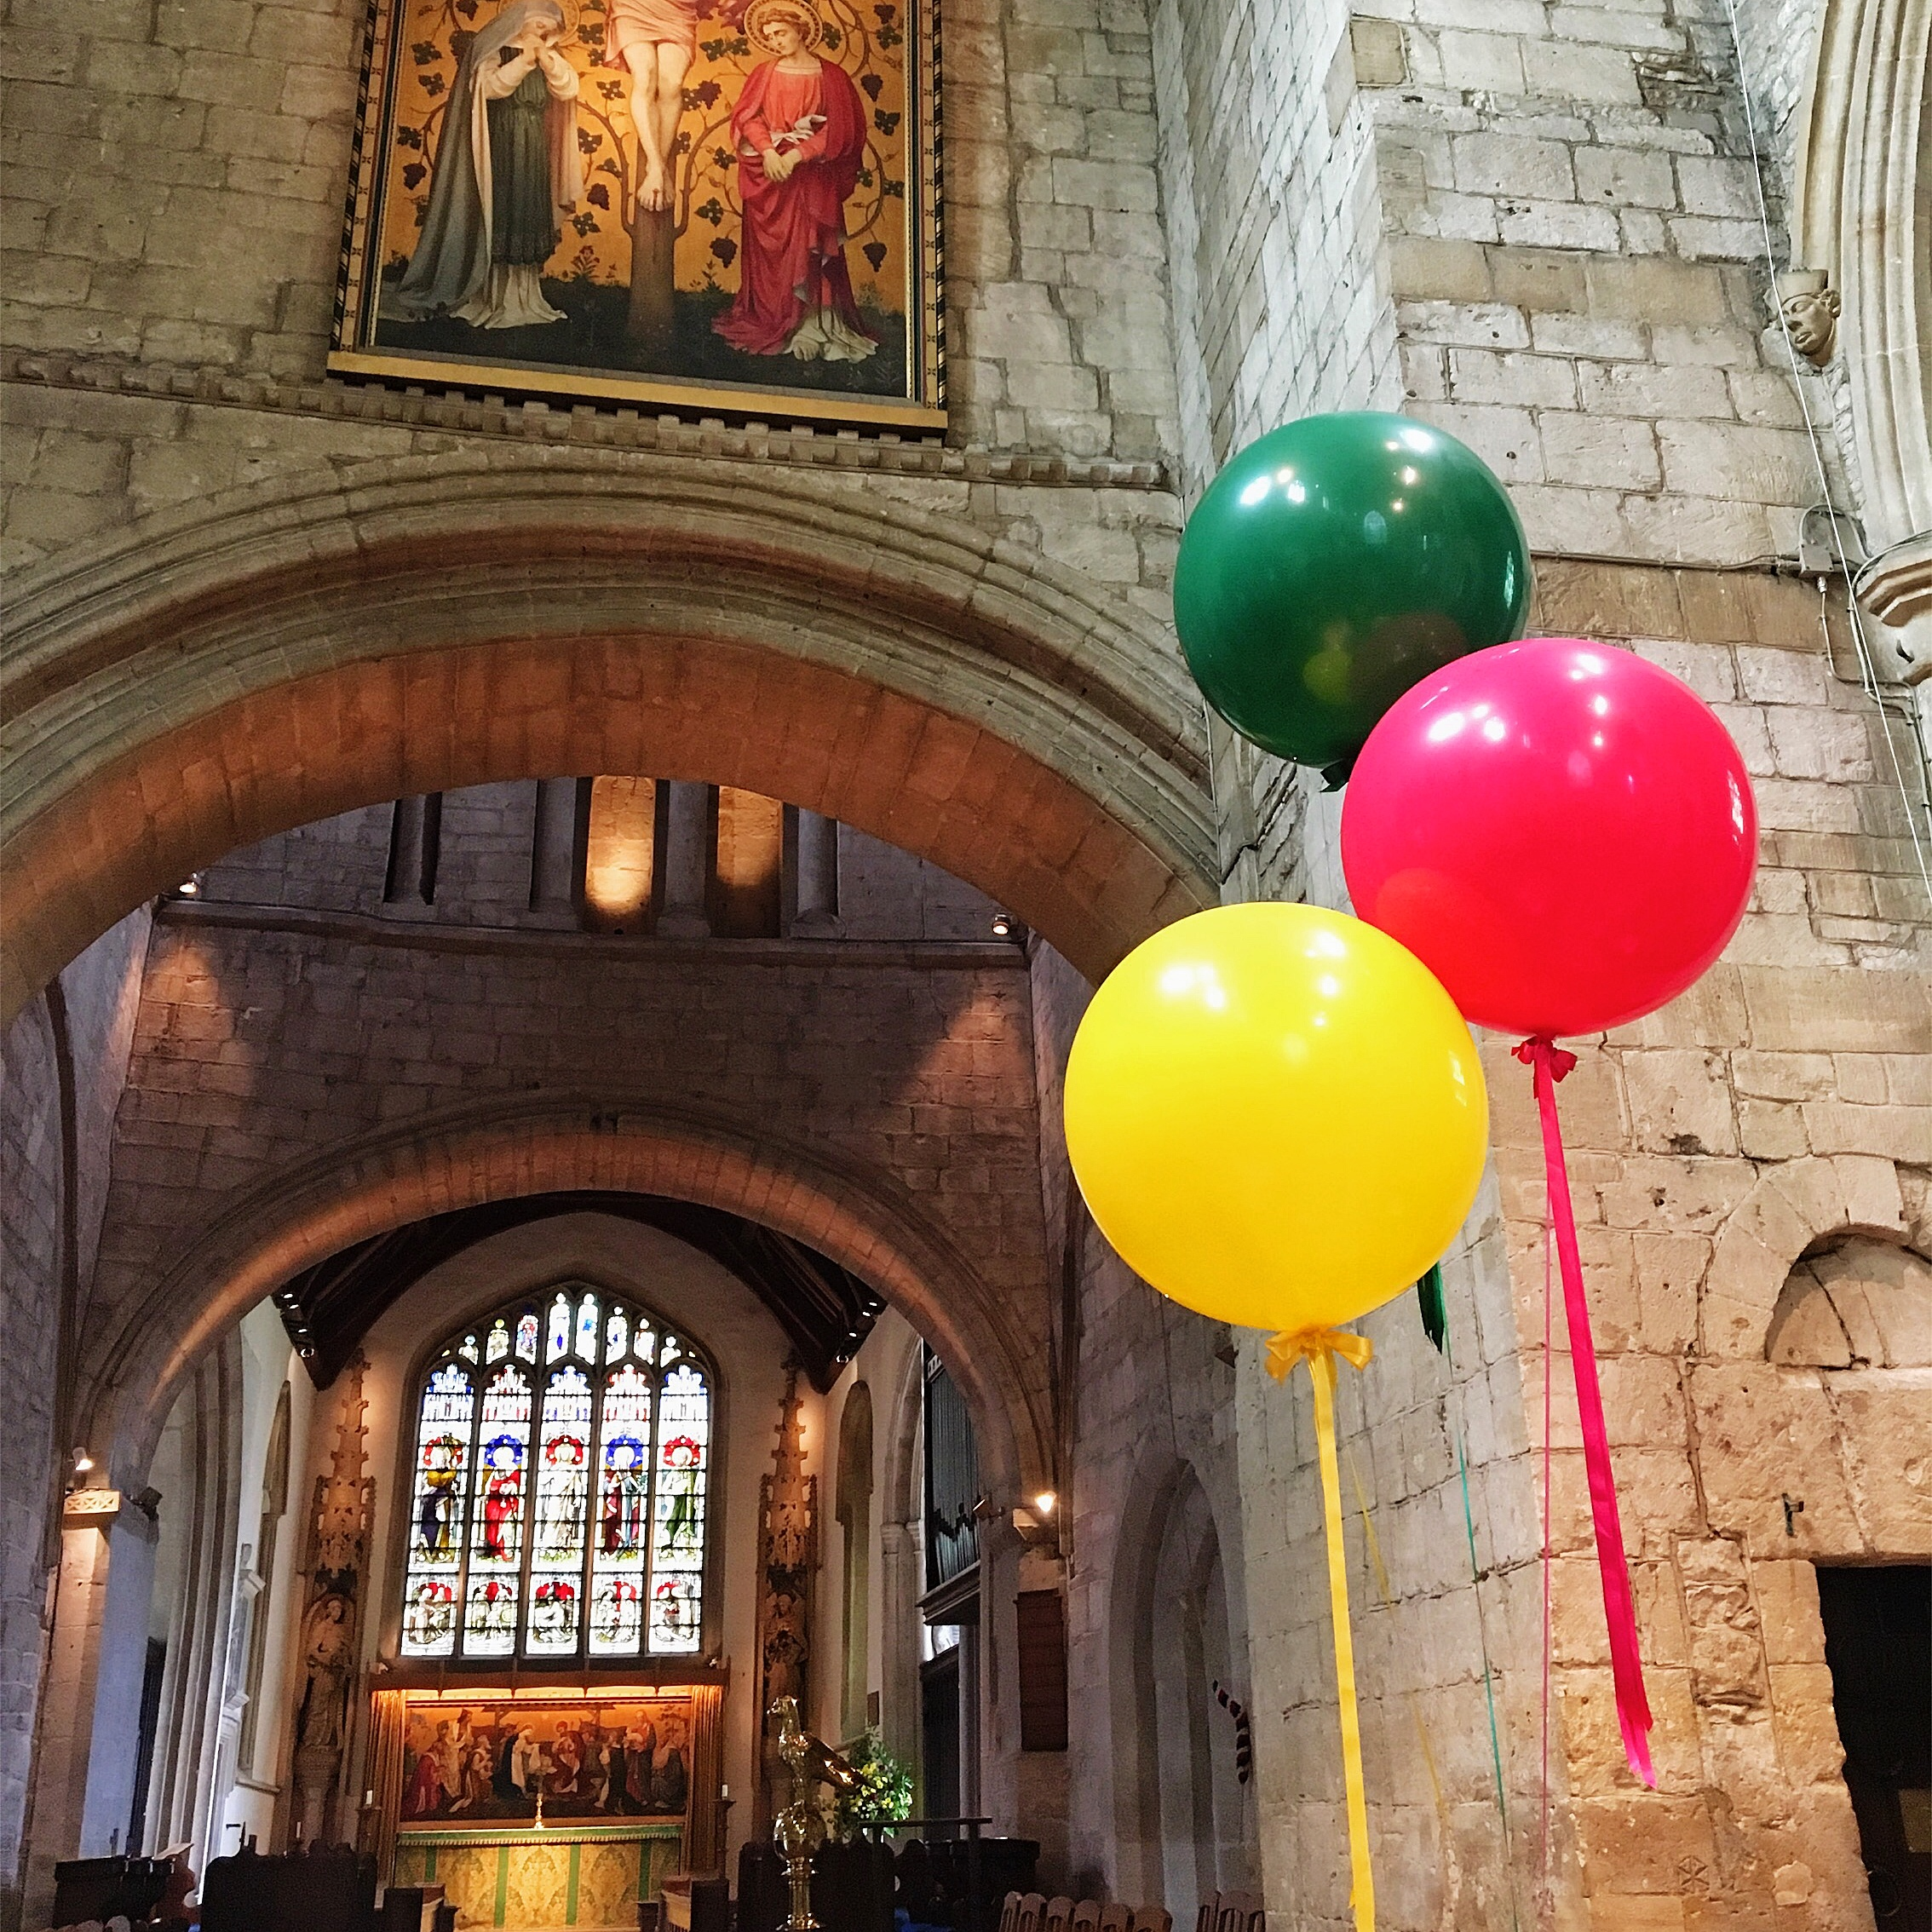 Giant Wedding Balloons in Church